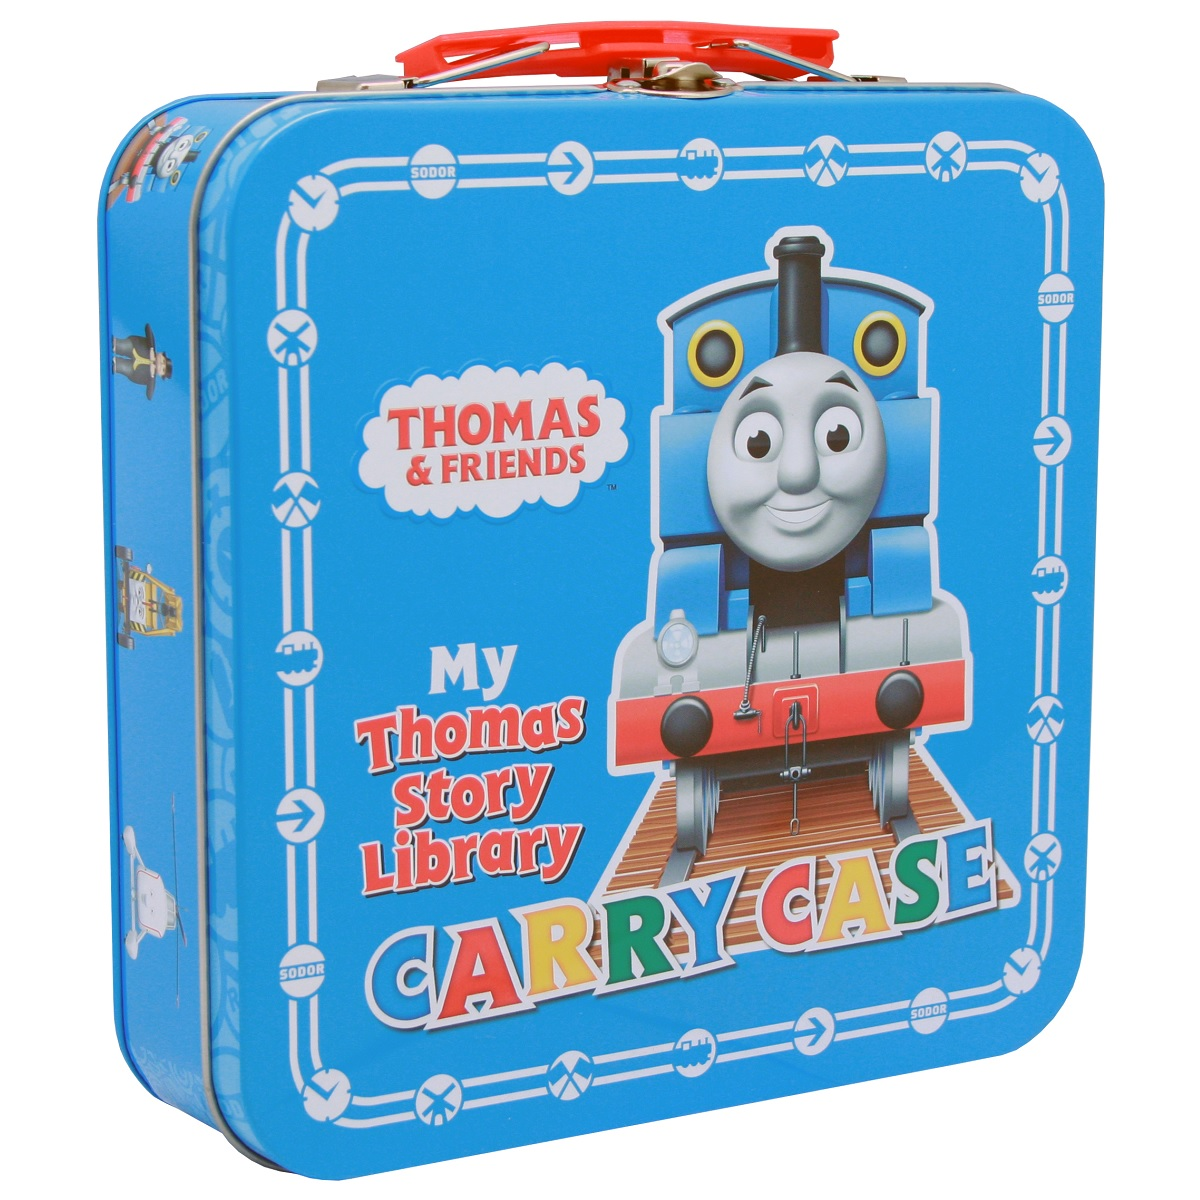 Thomas & Friends – My Thomas Story Library 10 Book Carry Case